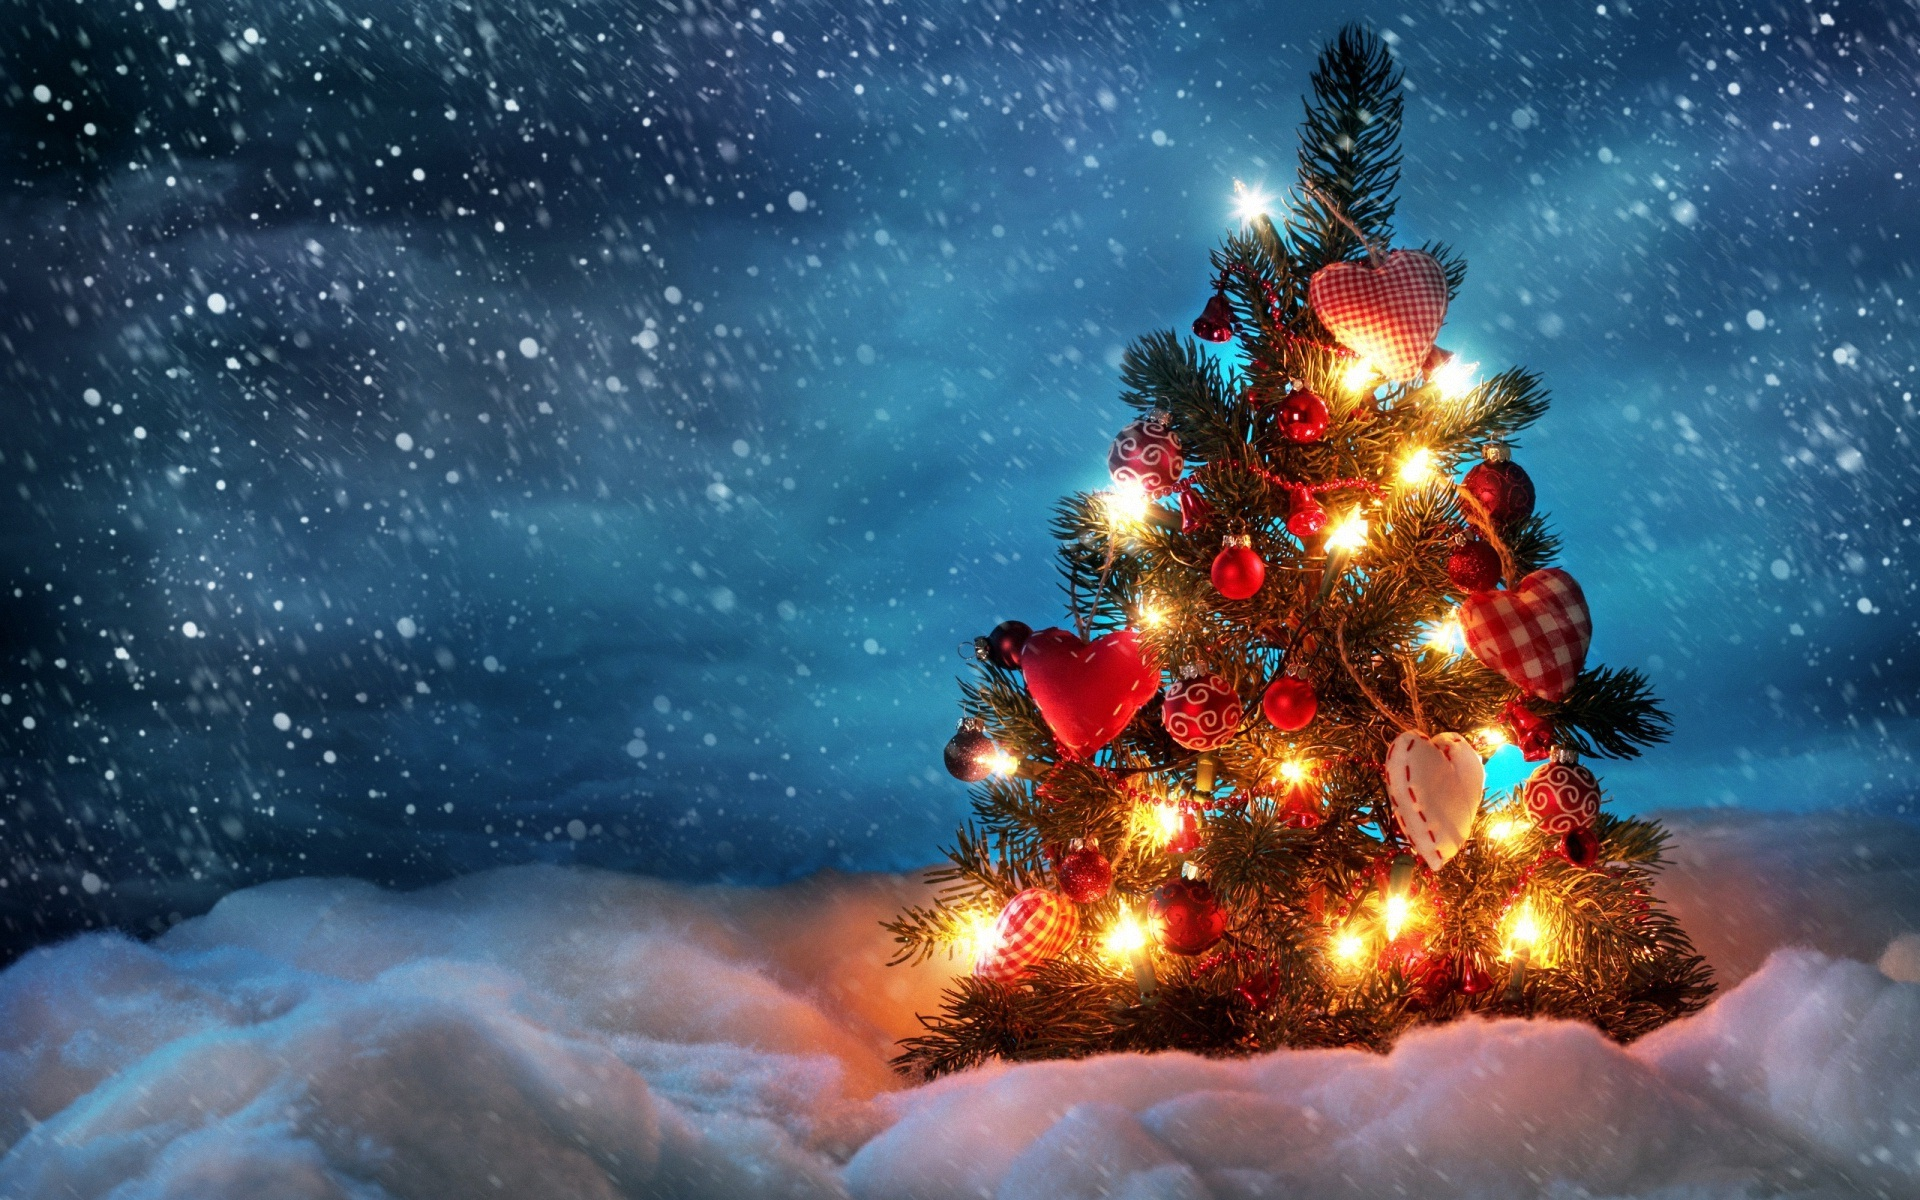 Beautiful christmas tree wallpaper - Beautiful Christmas Tree Wallpaper